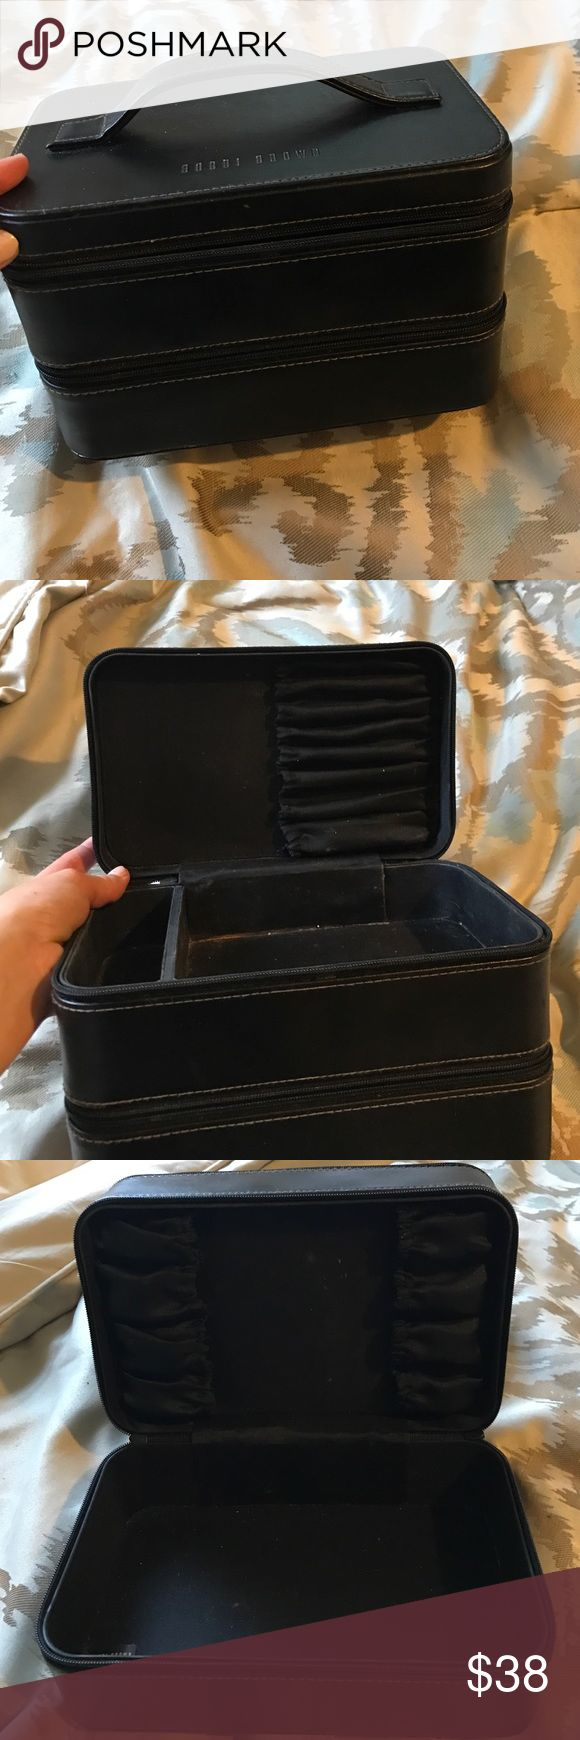 Bobbi brown makeup box Black Bobbi brown leather makeup case. Makeup